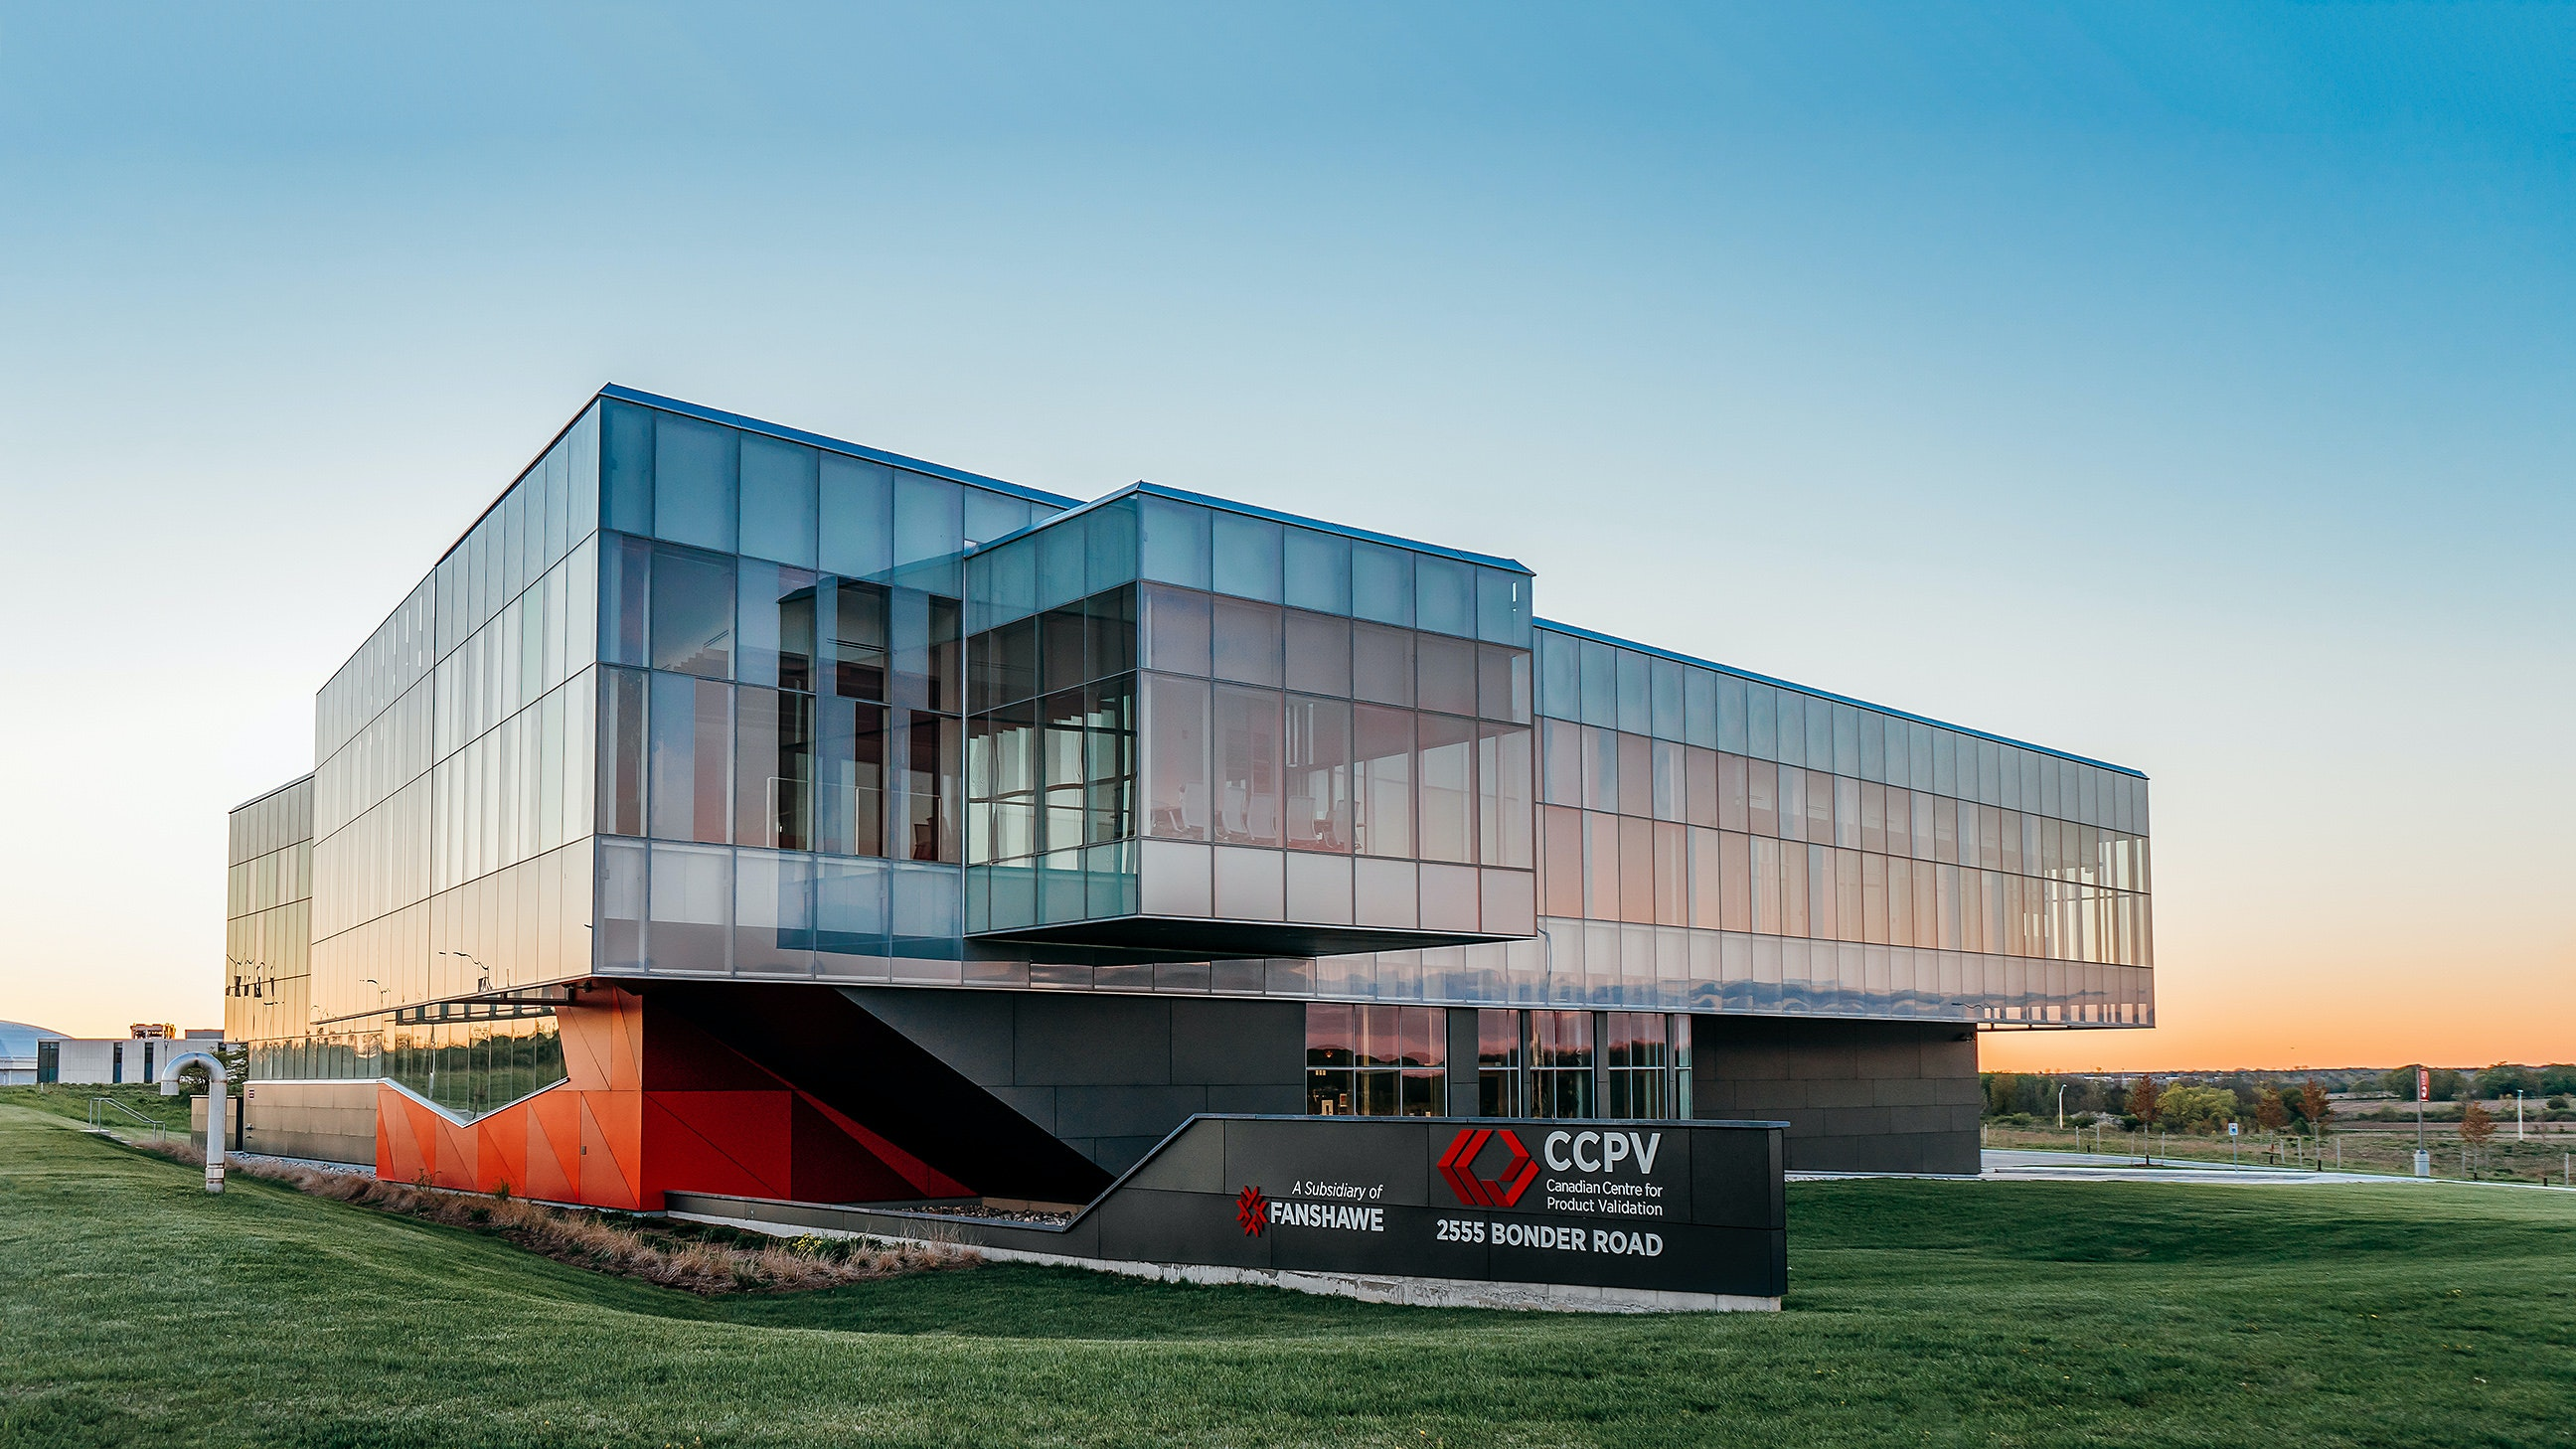 Canadian Centre for Product Validation (CCPV), Fanshawe College / architects Tillmann Ruth Robinson